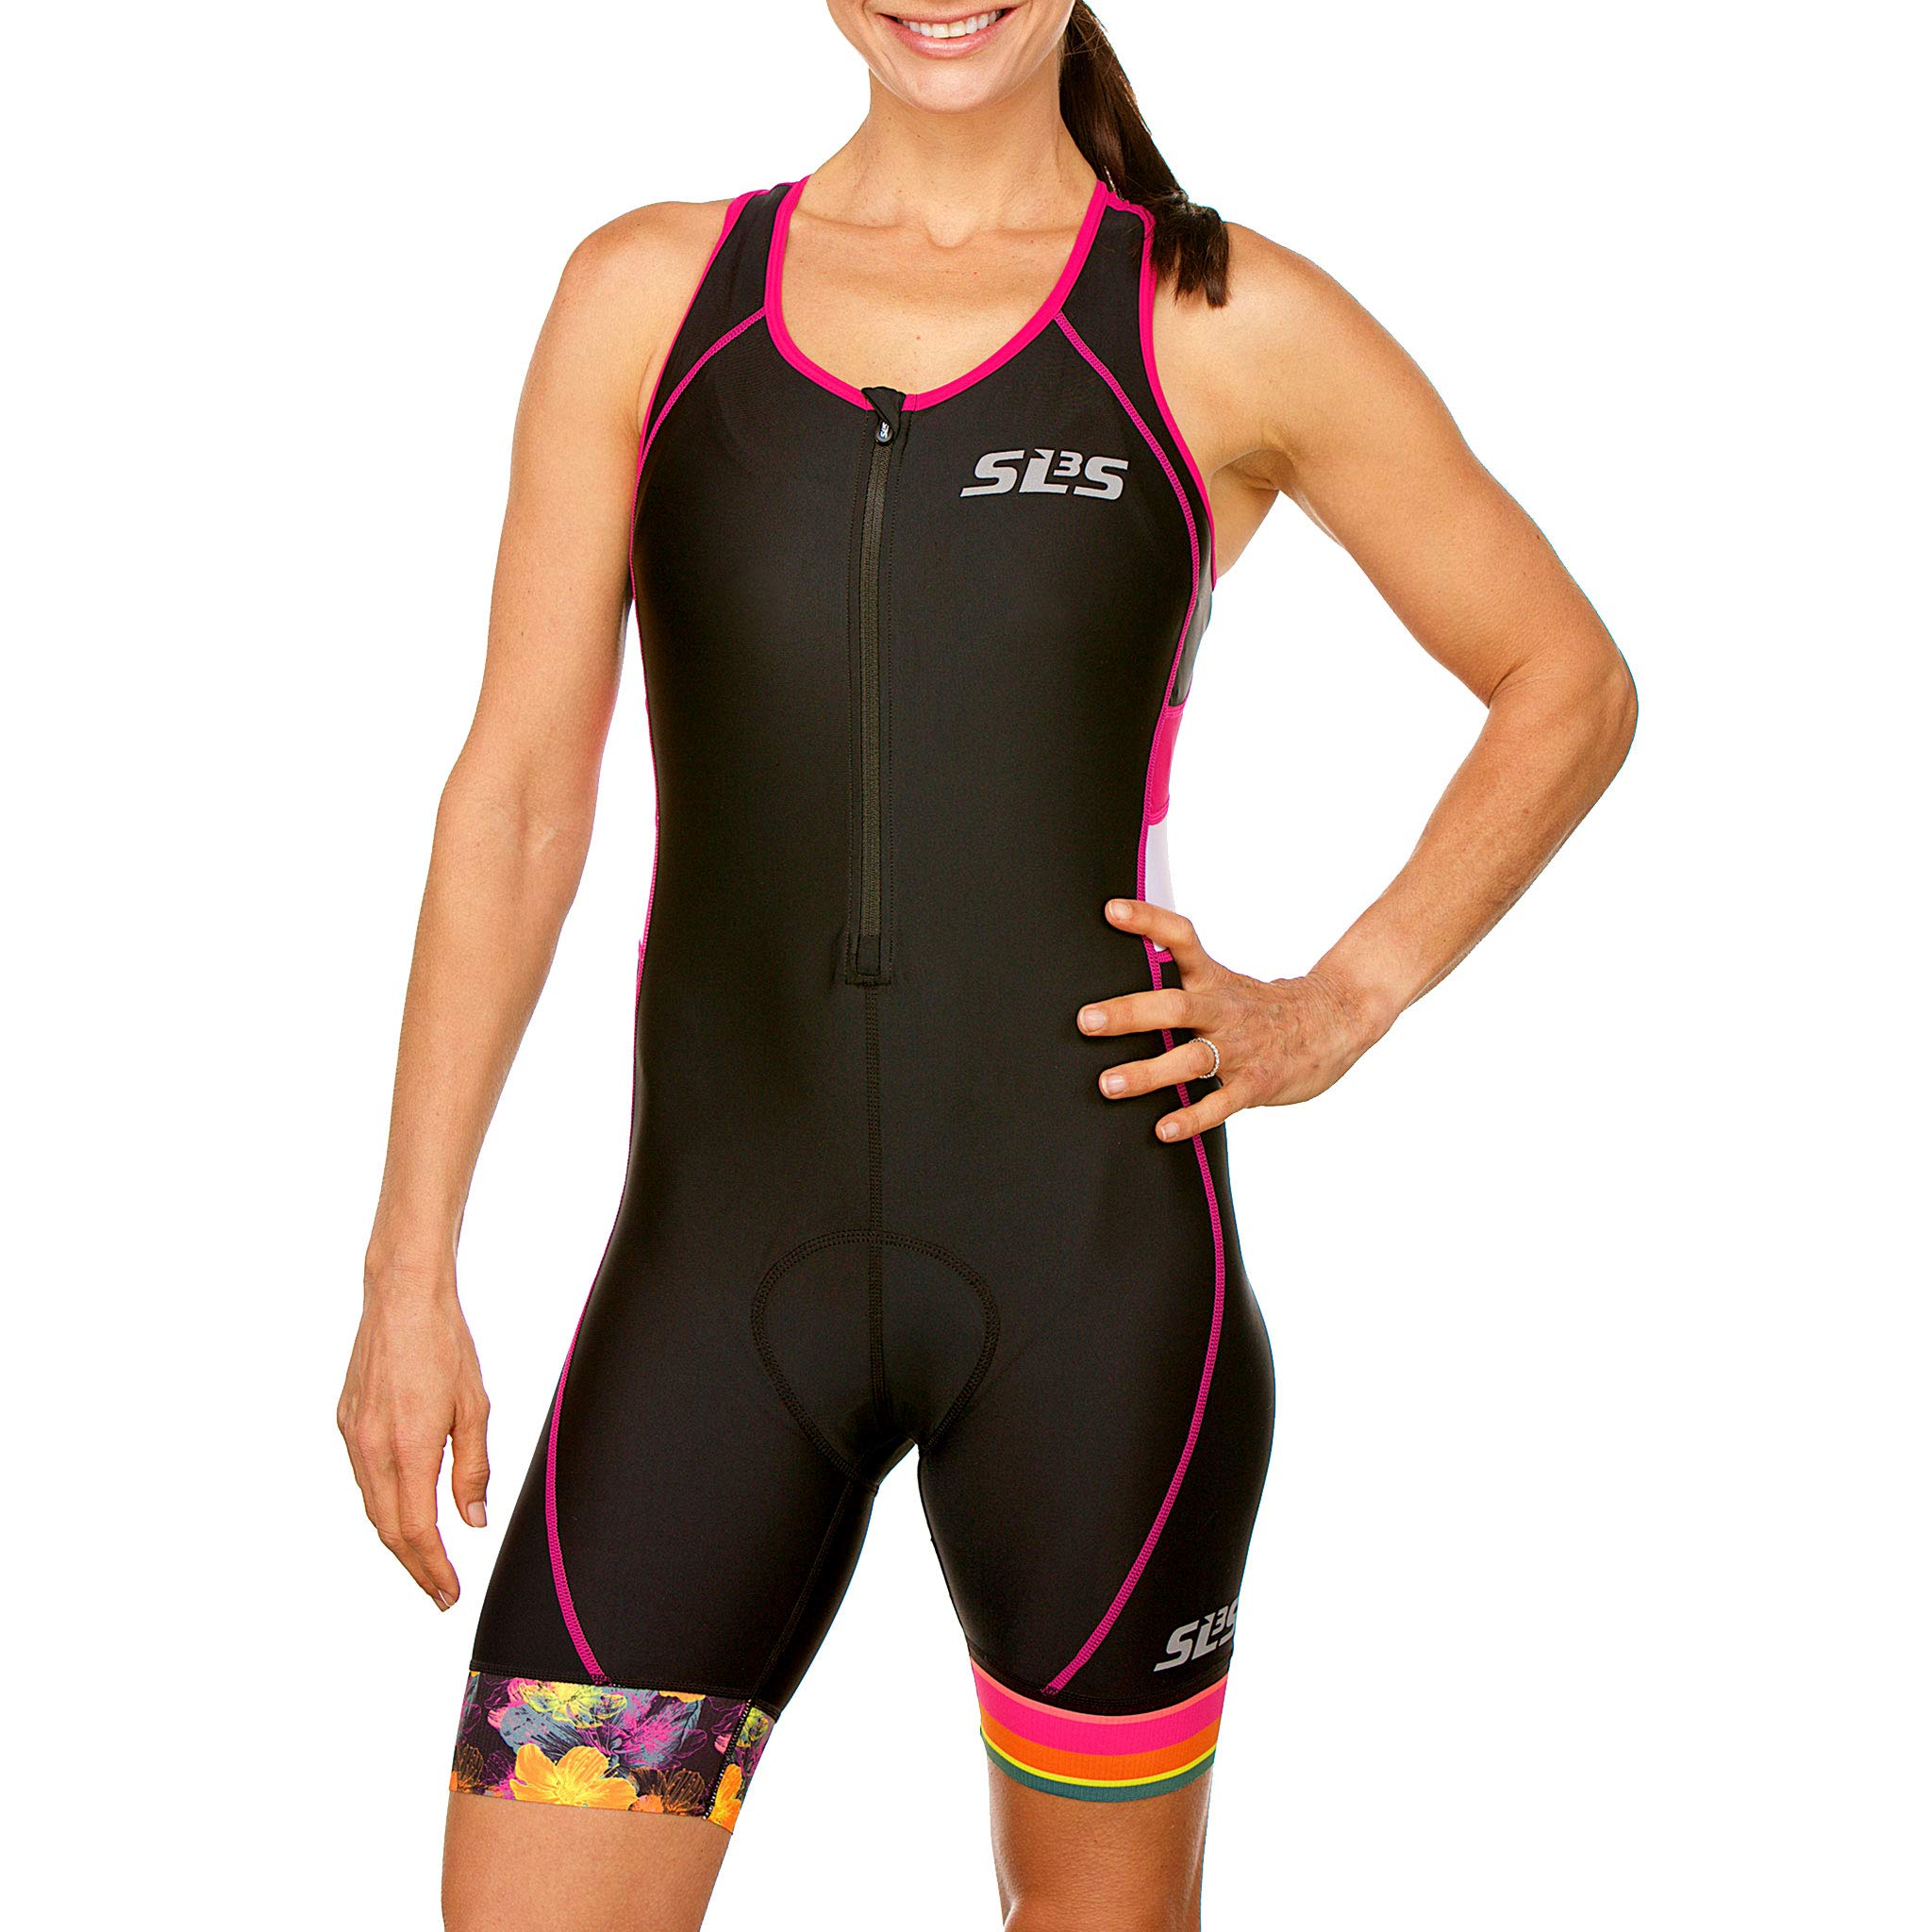 SLS3 Women`s Triathlon Suit FX | Womens Trisuits | 1 Pocket Triathlon Gear Suits Women | Anti-Friction Seams Womens Tri Suit | German Designed (Black/Bright Rose, M) by SLS3 (Image #1)